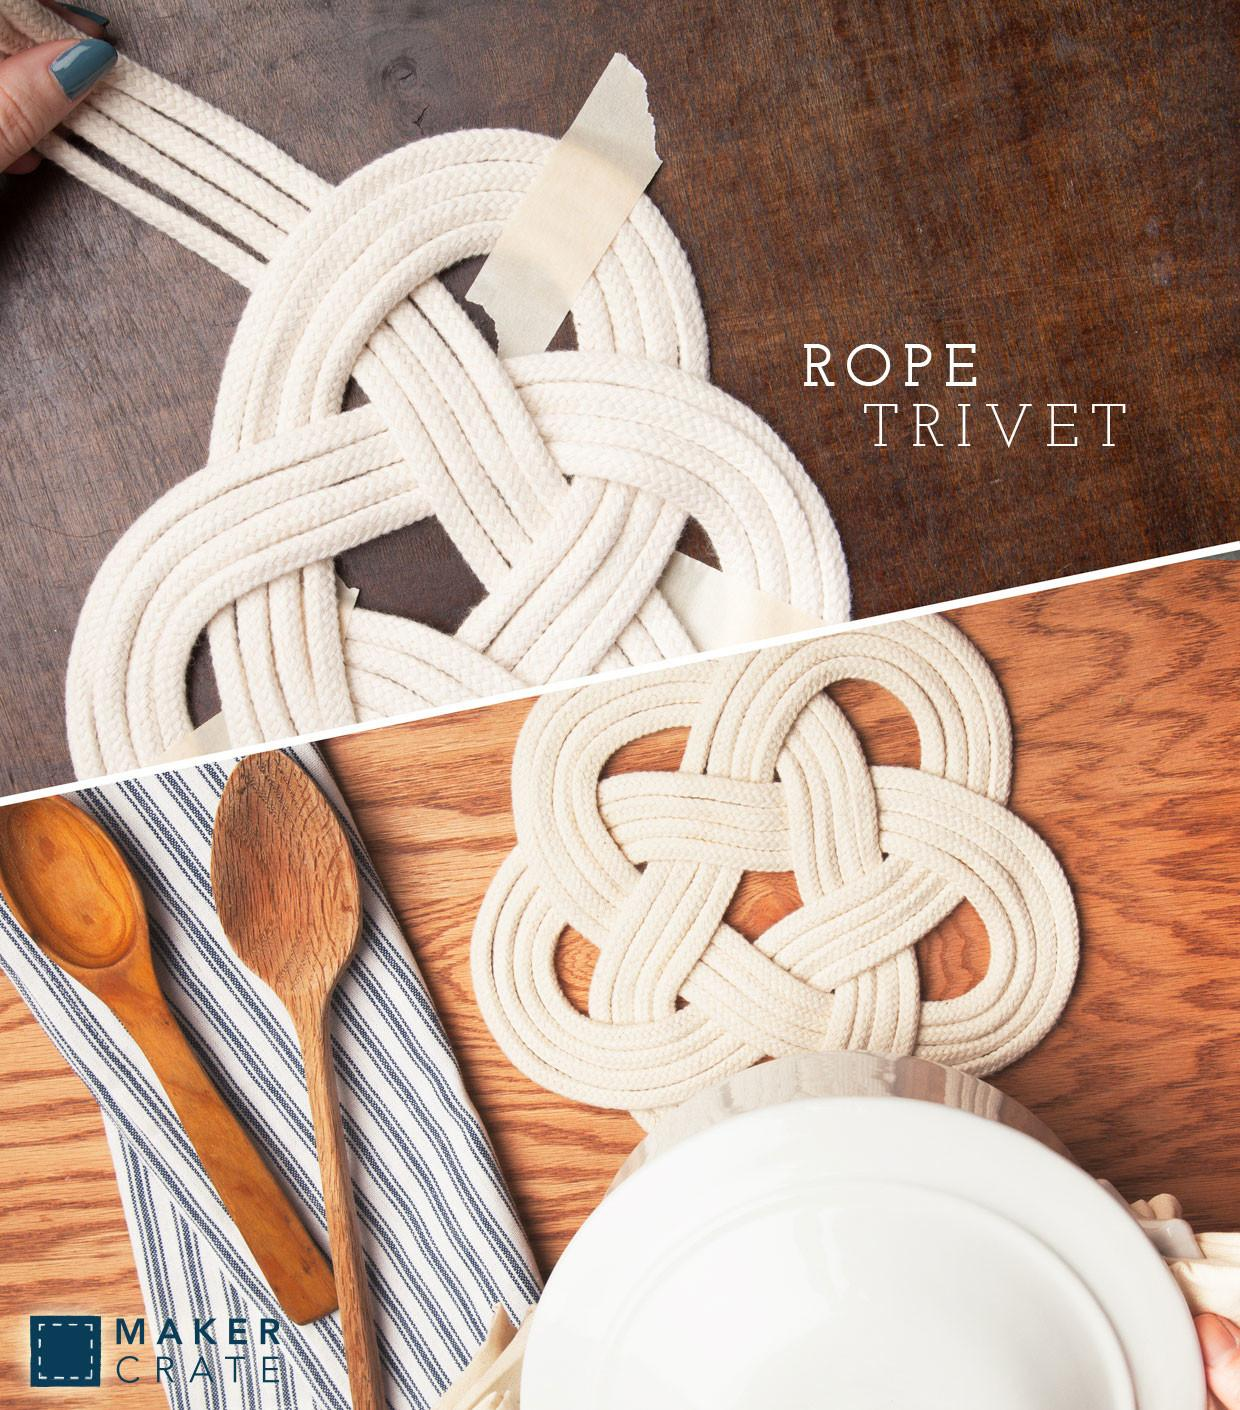 Rope Trivet Maker Crate